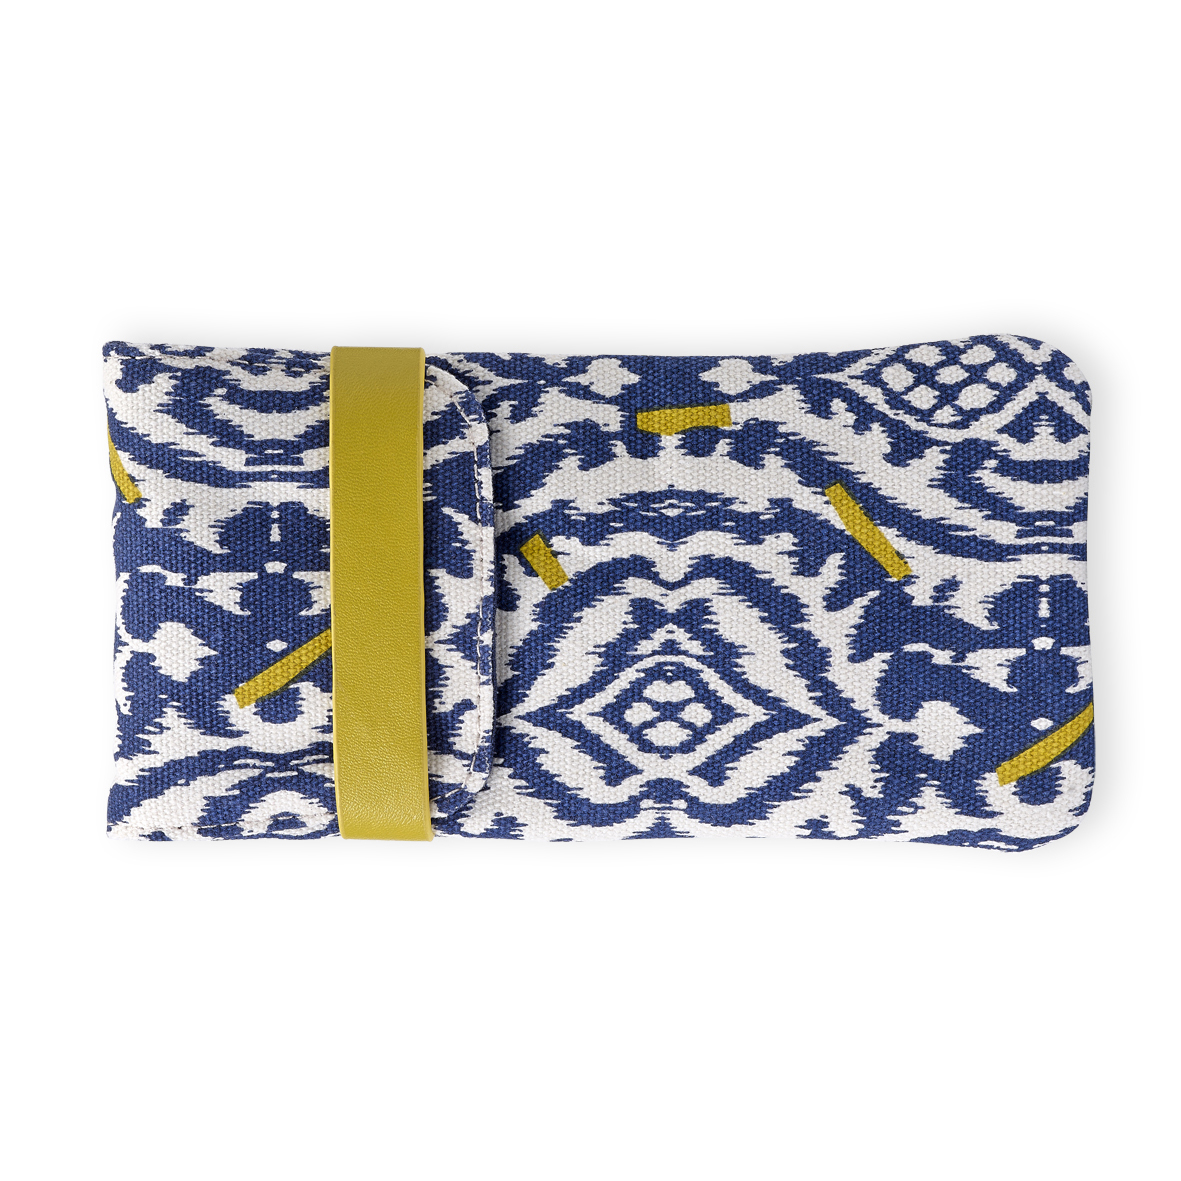 Etui à lunettes ikat bleu Mr and Mrs Clynk